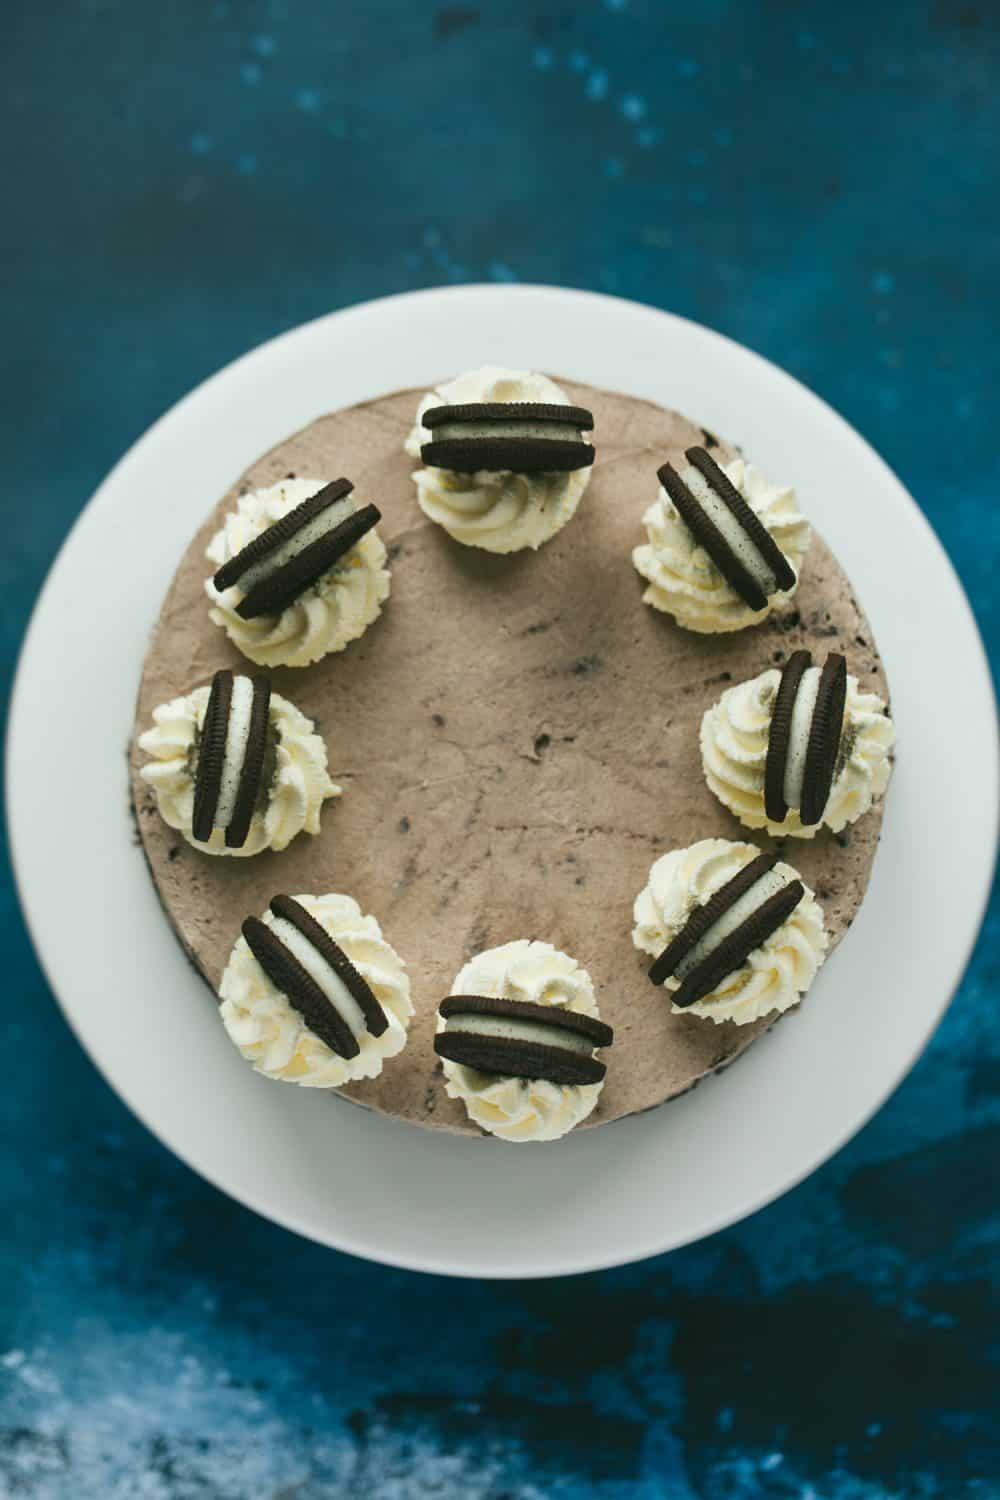 Overhead of a dessert on a cake stand. There is a dark blue background.